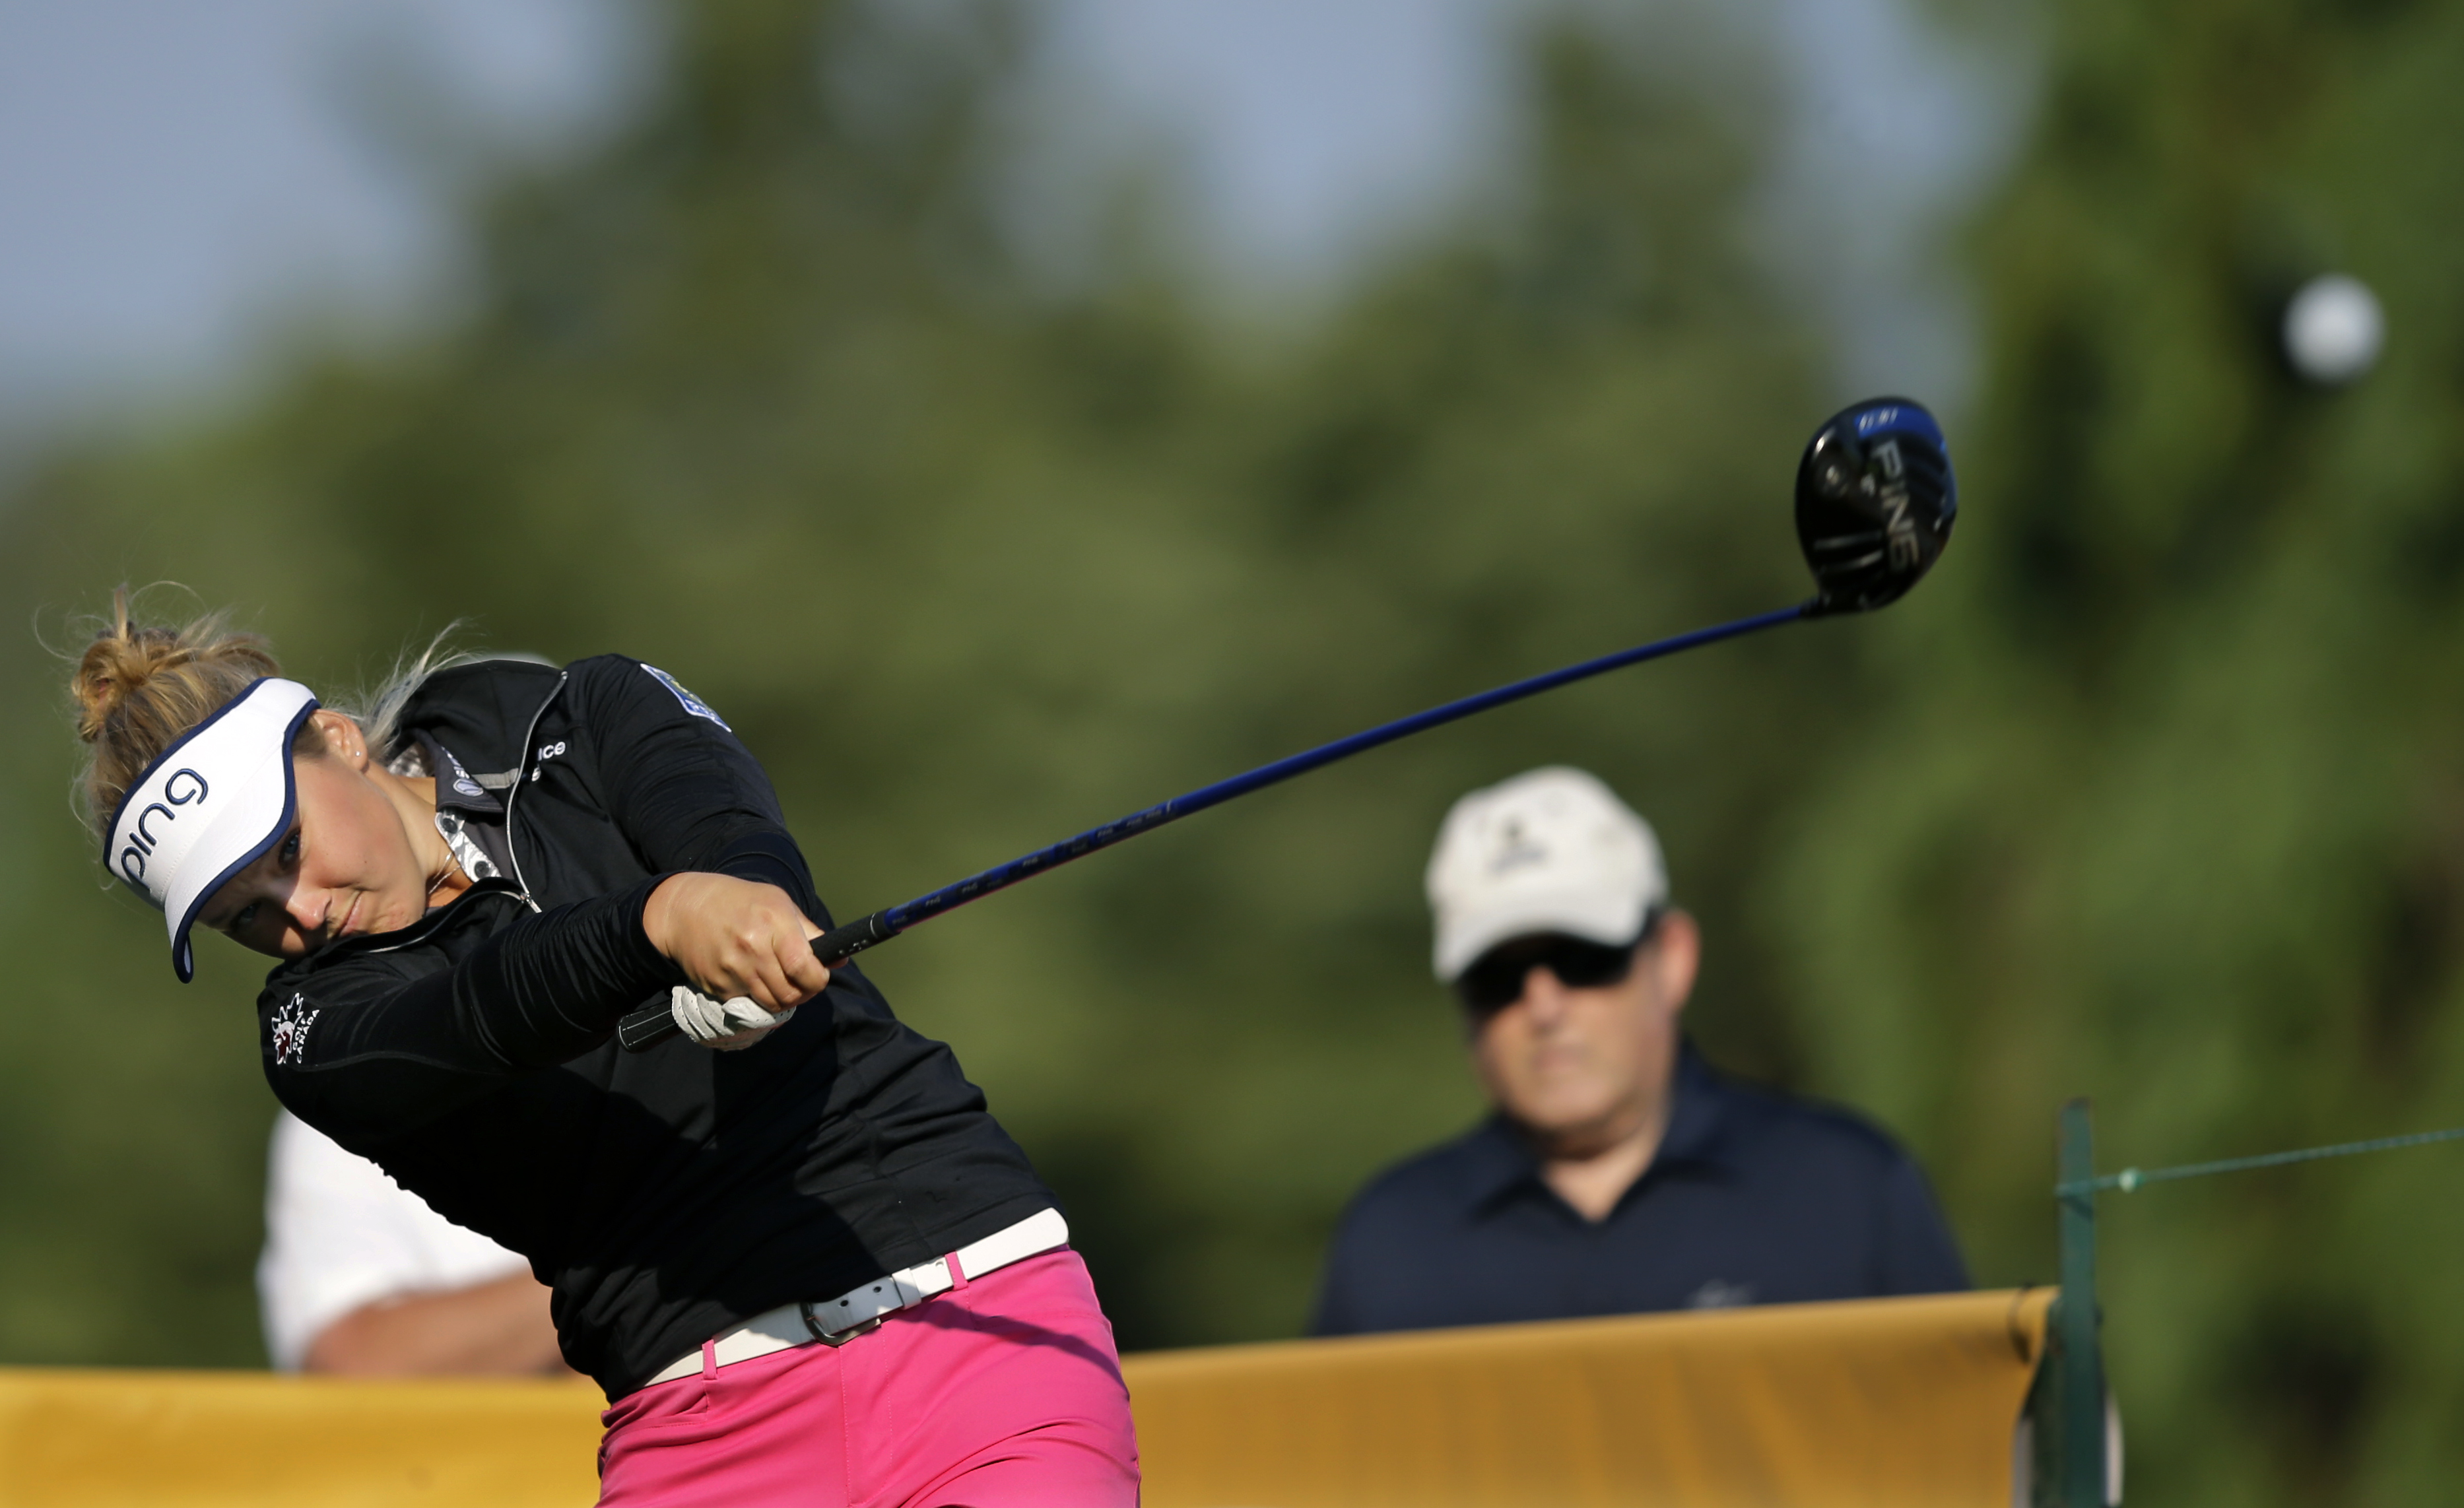 Brooke M. Henderson hits a tee shot on the 12th hole during the first round of the ShopRite LPGA Classic golf tournament, Friday, May 29, 2015, in Galloway Township, N.J. (AP Photo/Mel Evans)